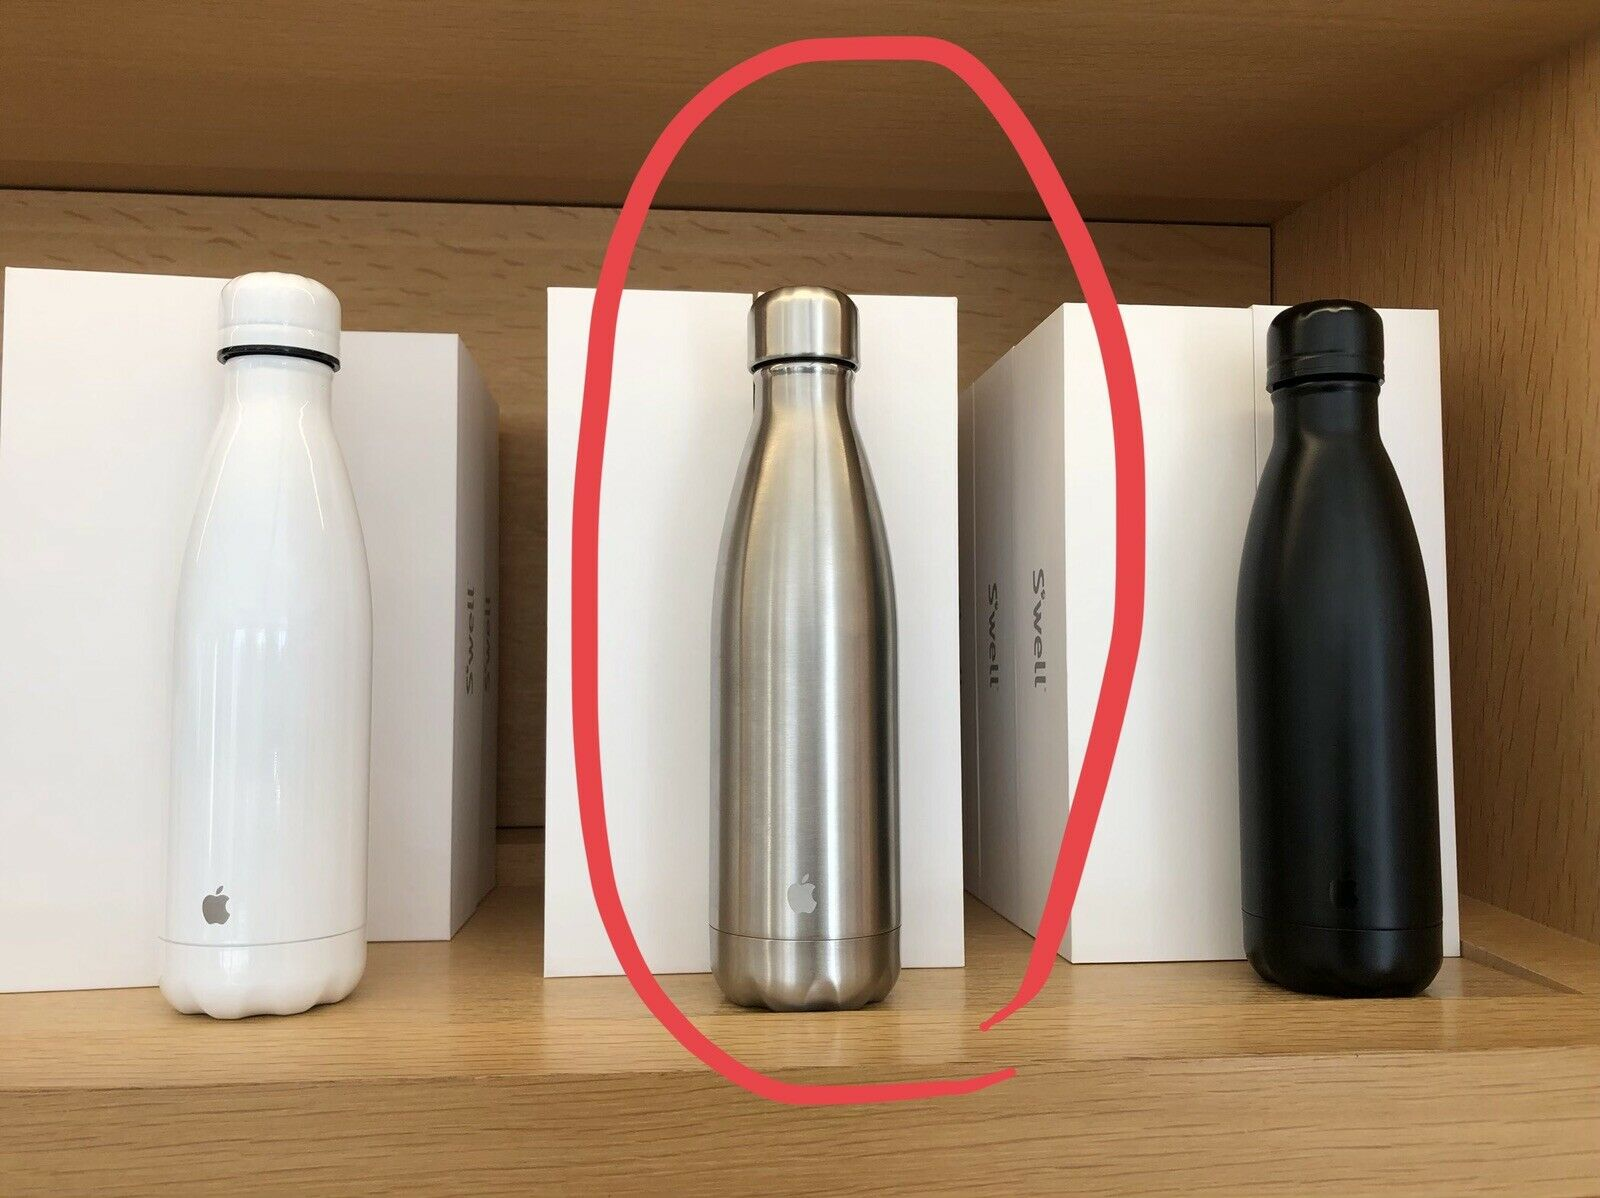 Apple Park Infinity Loop Exclusive Swell Stainless Steel Water Bottle 17 oz New